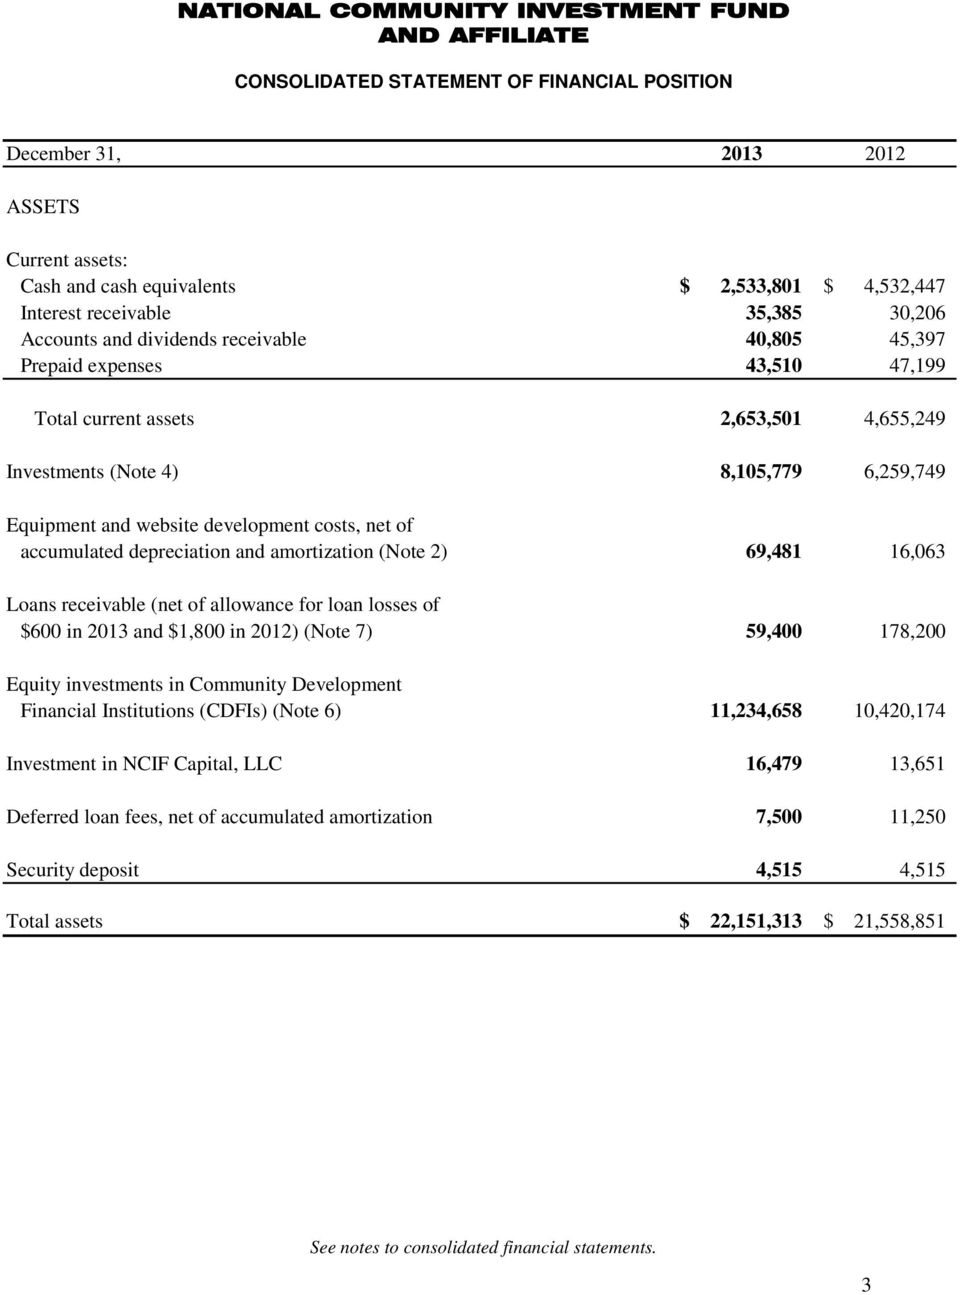 depreciation and amortization (Note 2) 69,481 16,063 Loans receivable (net of allowance for loan losses of $600 in 2013 and $1,800 in 2012) (Note 7) 59,400 178,200 Equity investments in Community